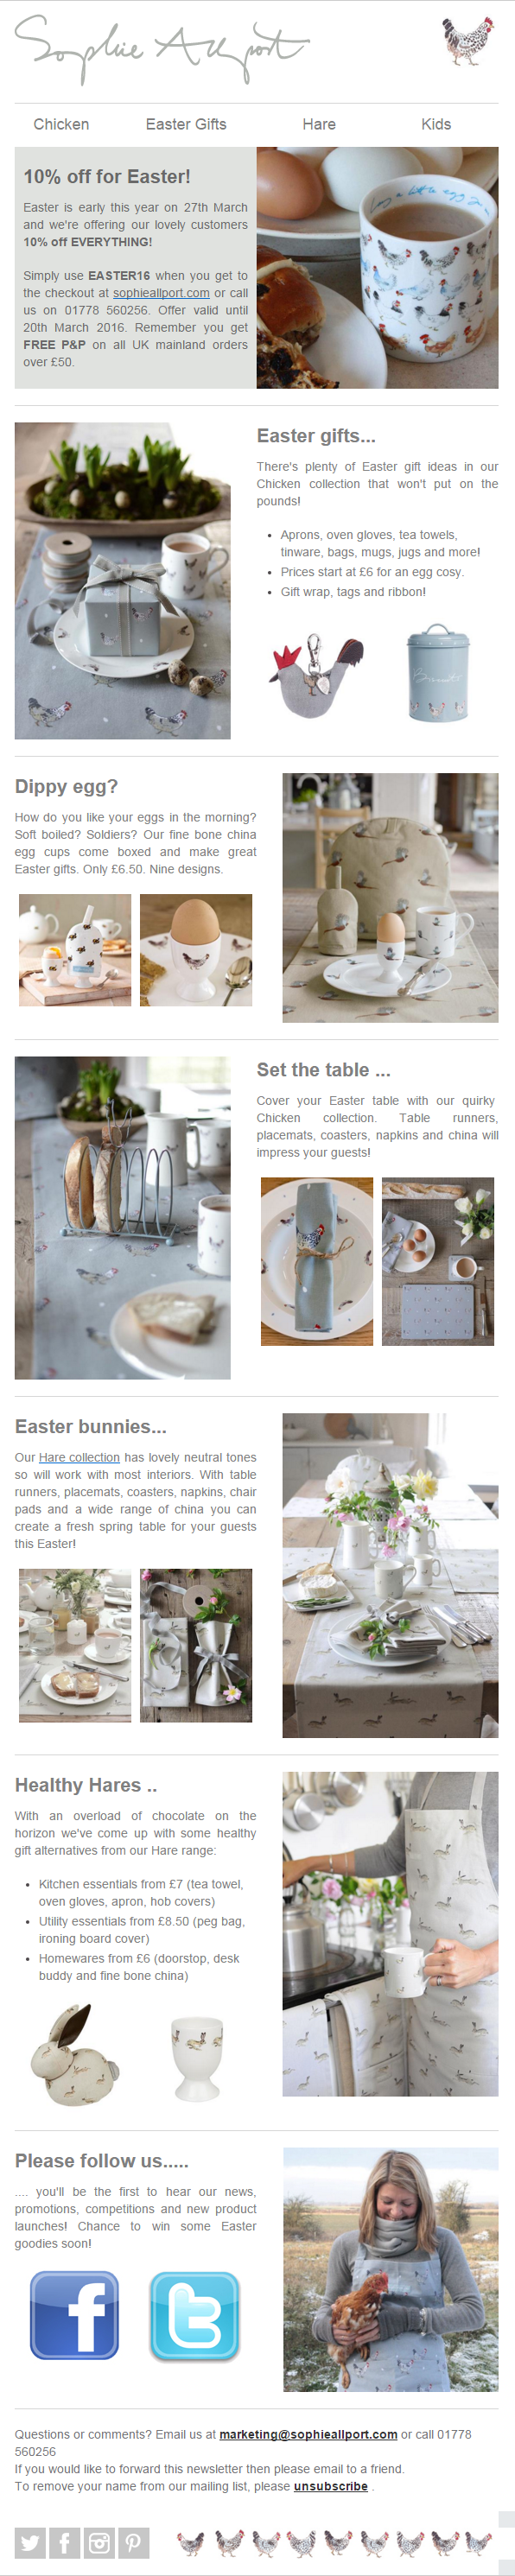 Sophie allport 10 off easter newsletter with coupon code sophie allport 10 off easter newsletter with coupon code emailmarketing email marketing negle Gallery